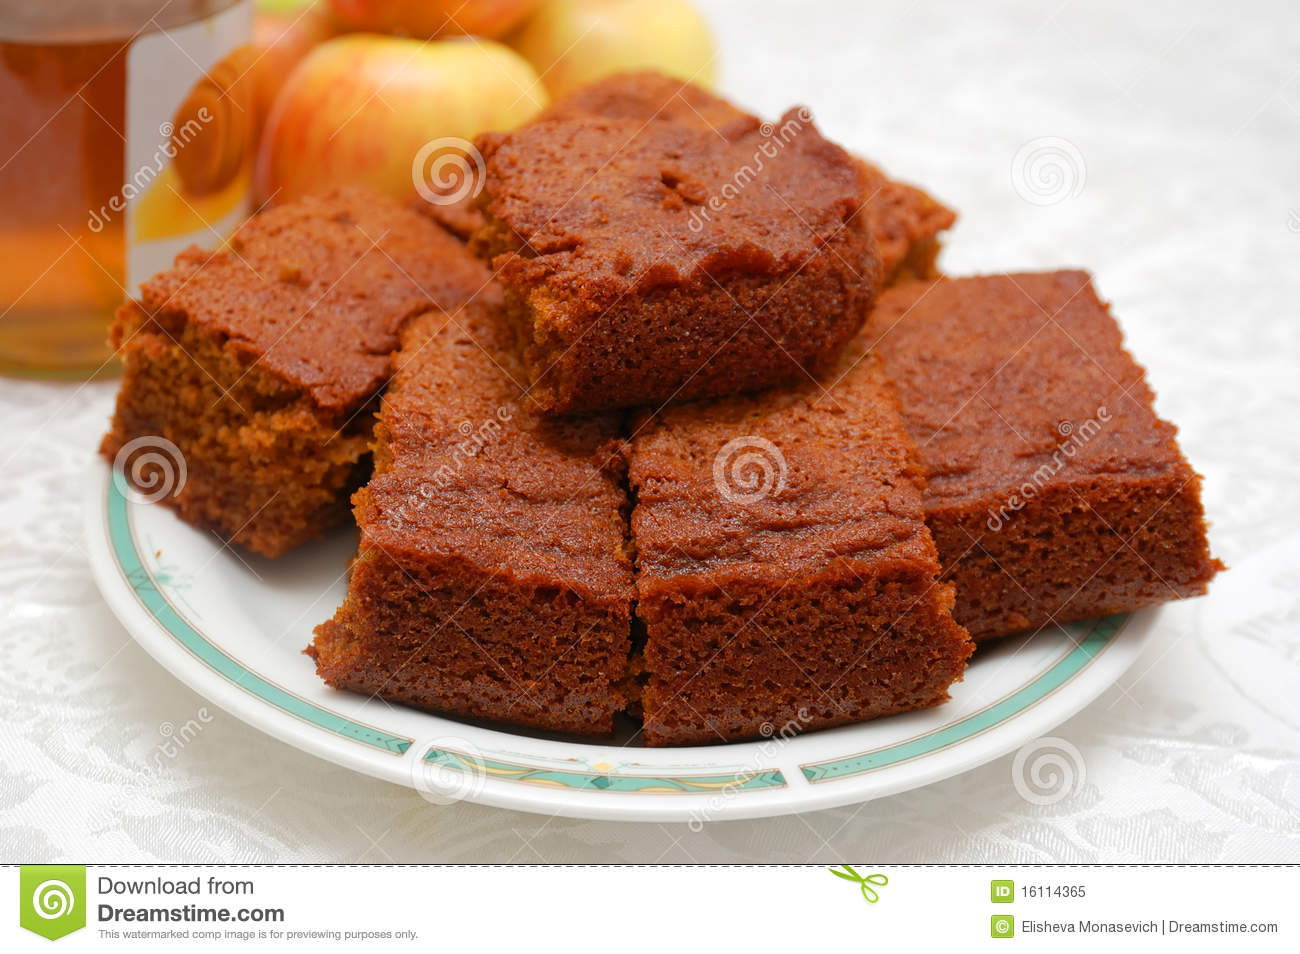 Clipart Of Honey Cake : Close Up Of Honey Cake Royalty Free Stock Photo - Image ...